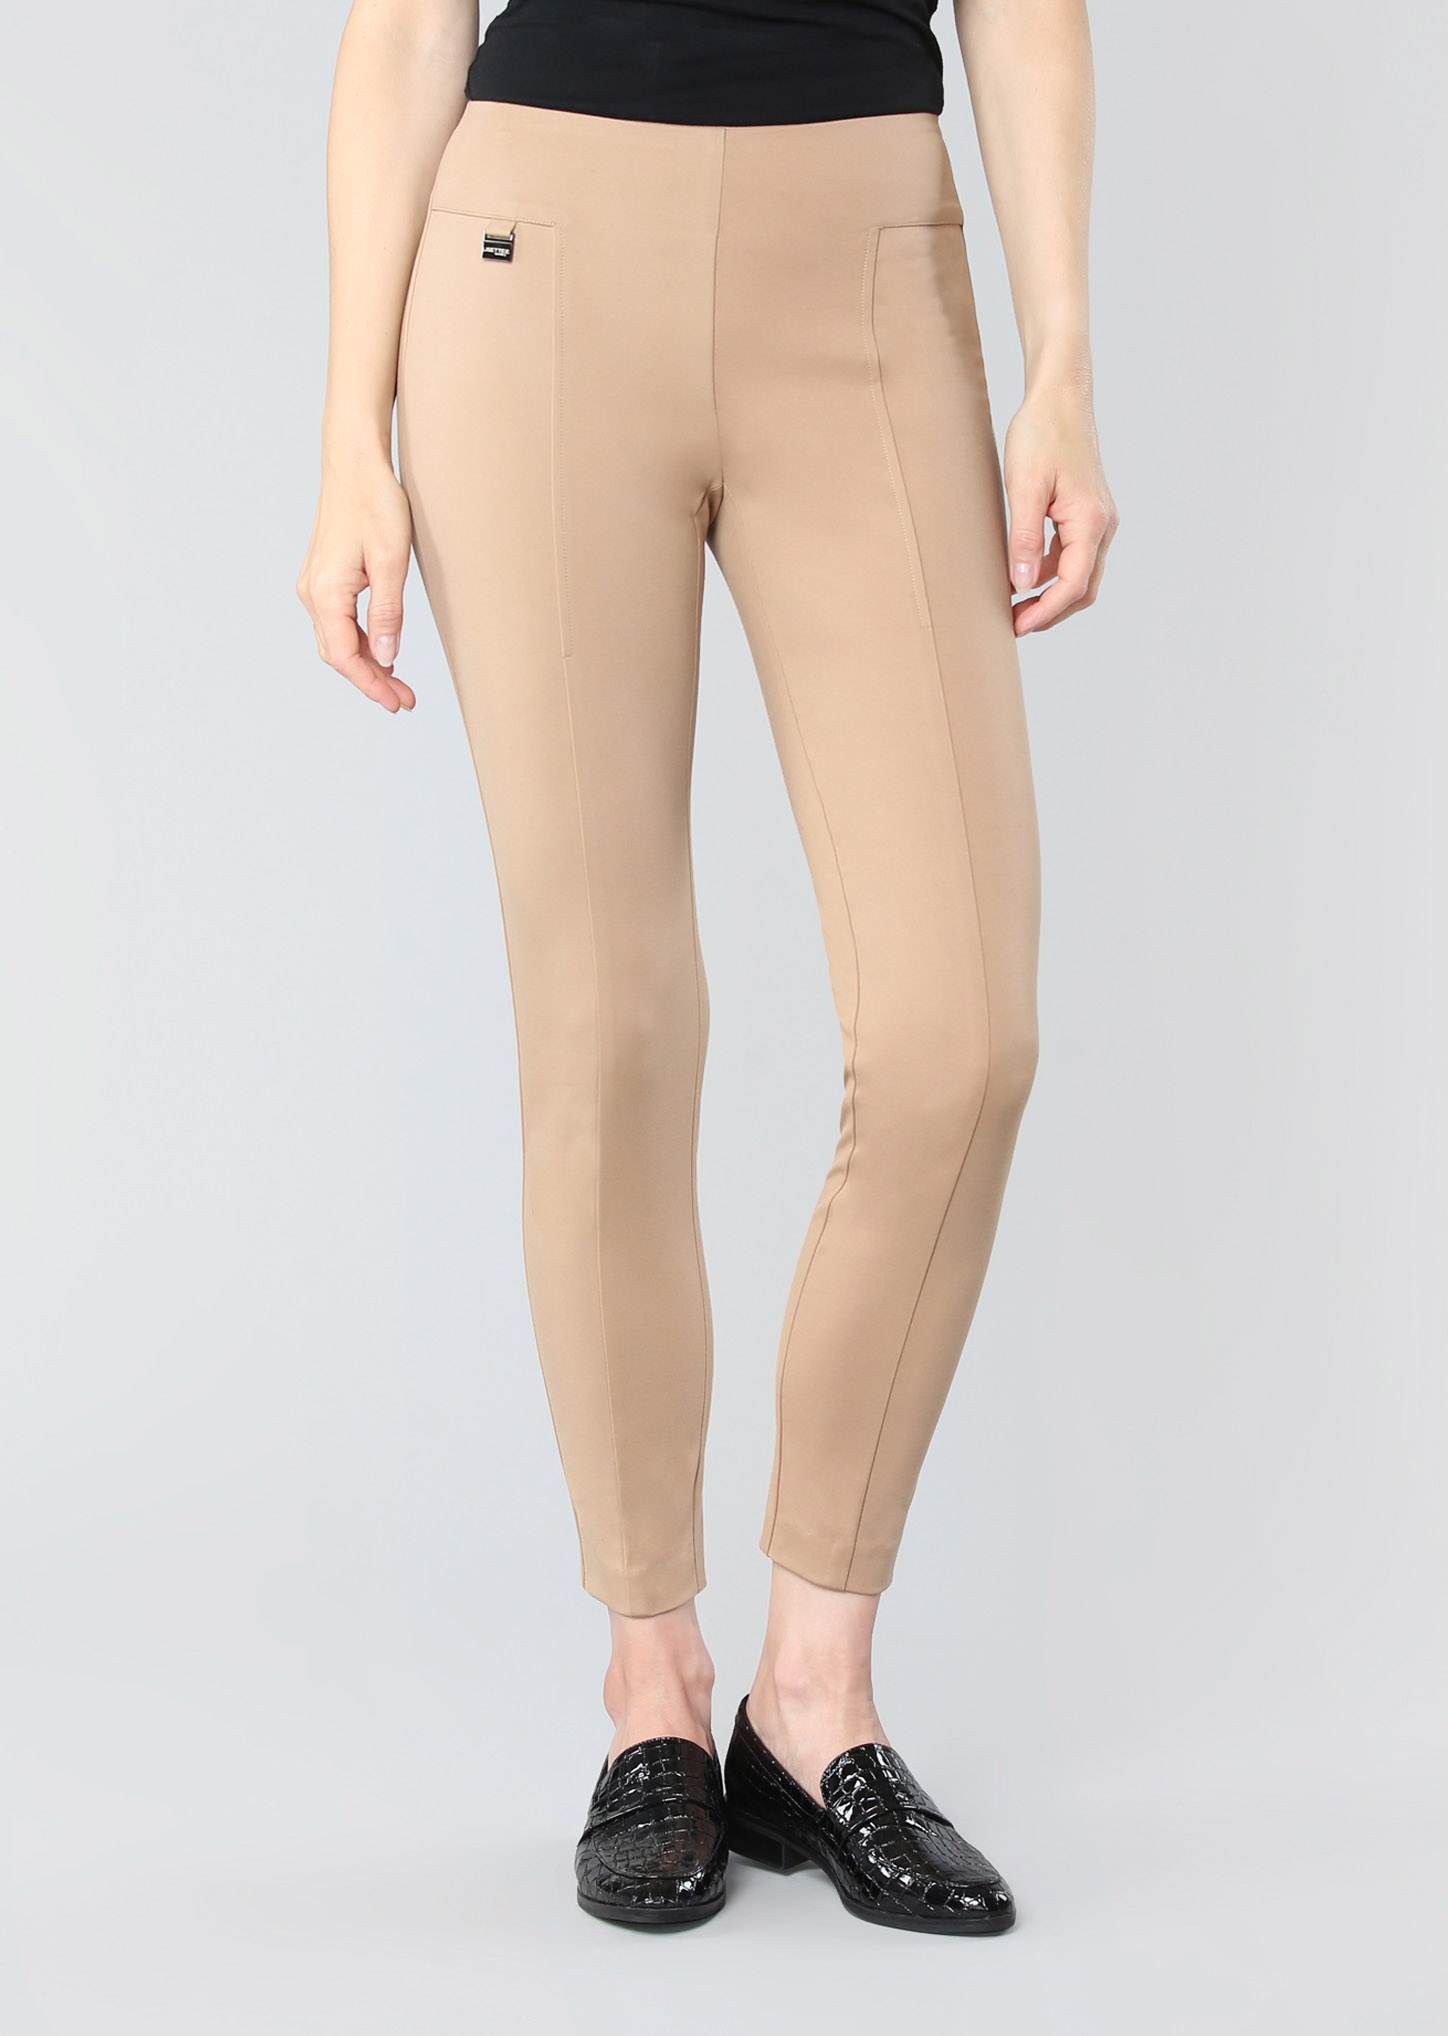 Lisette L. Fall 2020 Essential, Slim Ankle Narrow Pant Style 176646 Kathryn PDR, 3 Colors Available